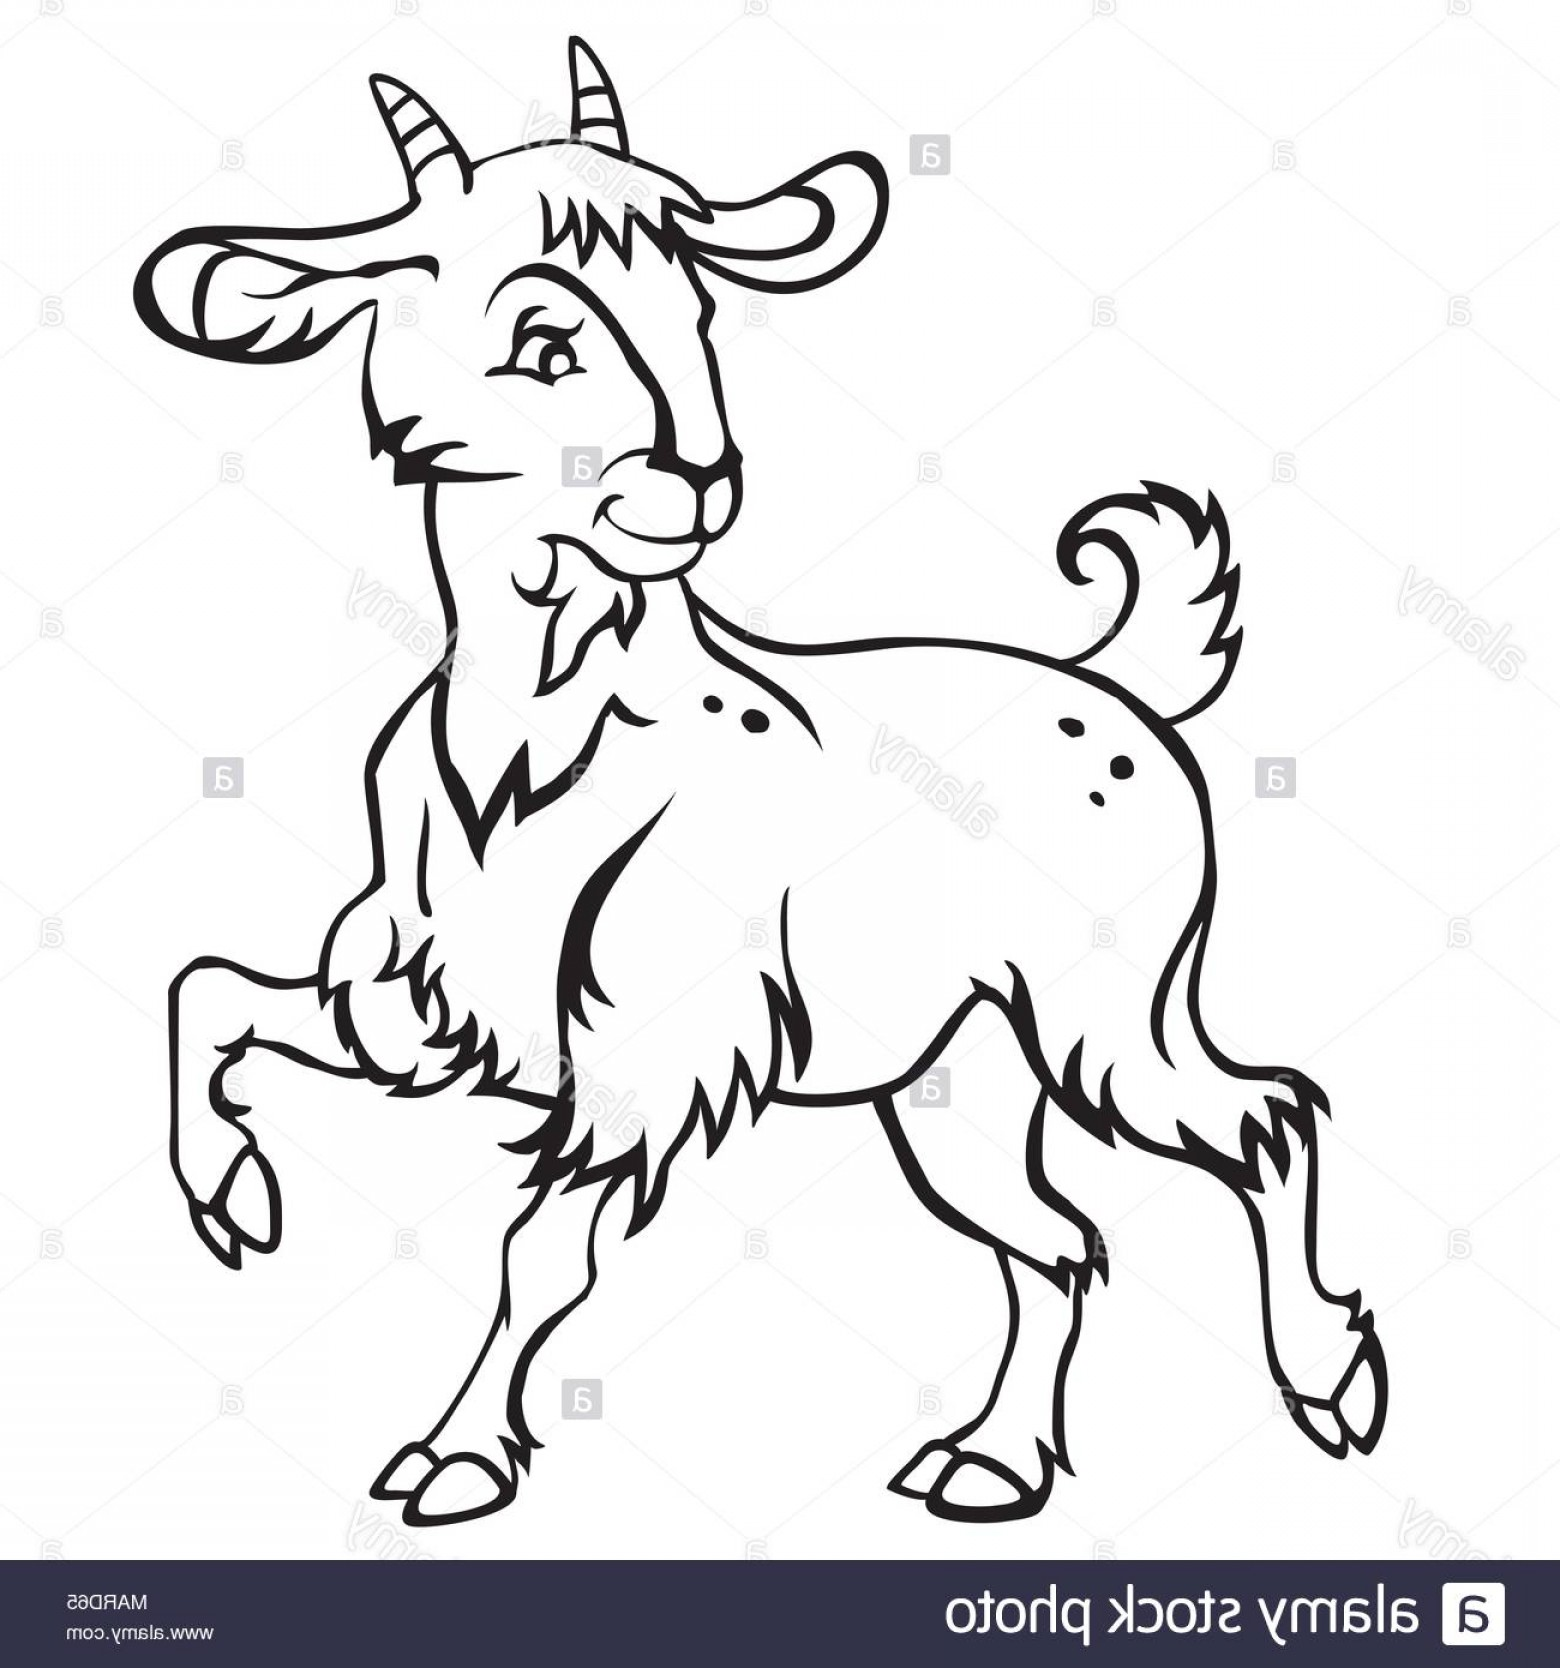 Funny Black And White Vector: Decorative Standing Funny Cartoon Goat Kid Monochrome Vector Illustration In Black Color Isolated On White Background Image